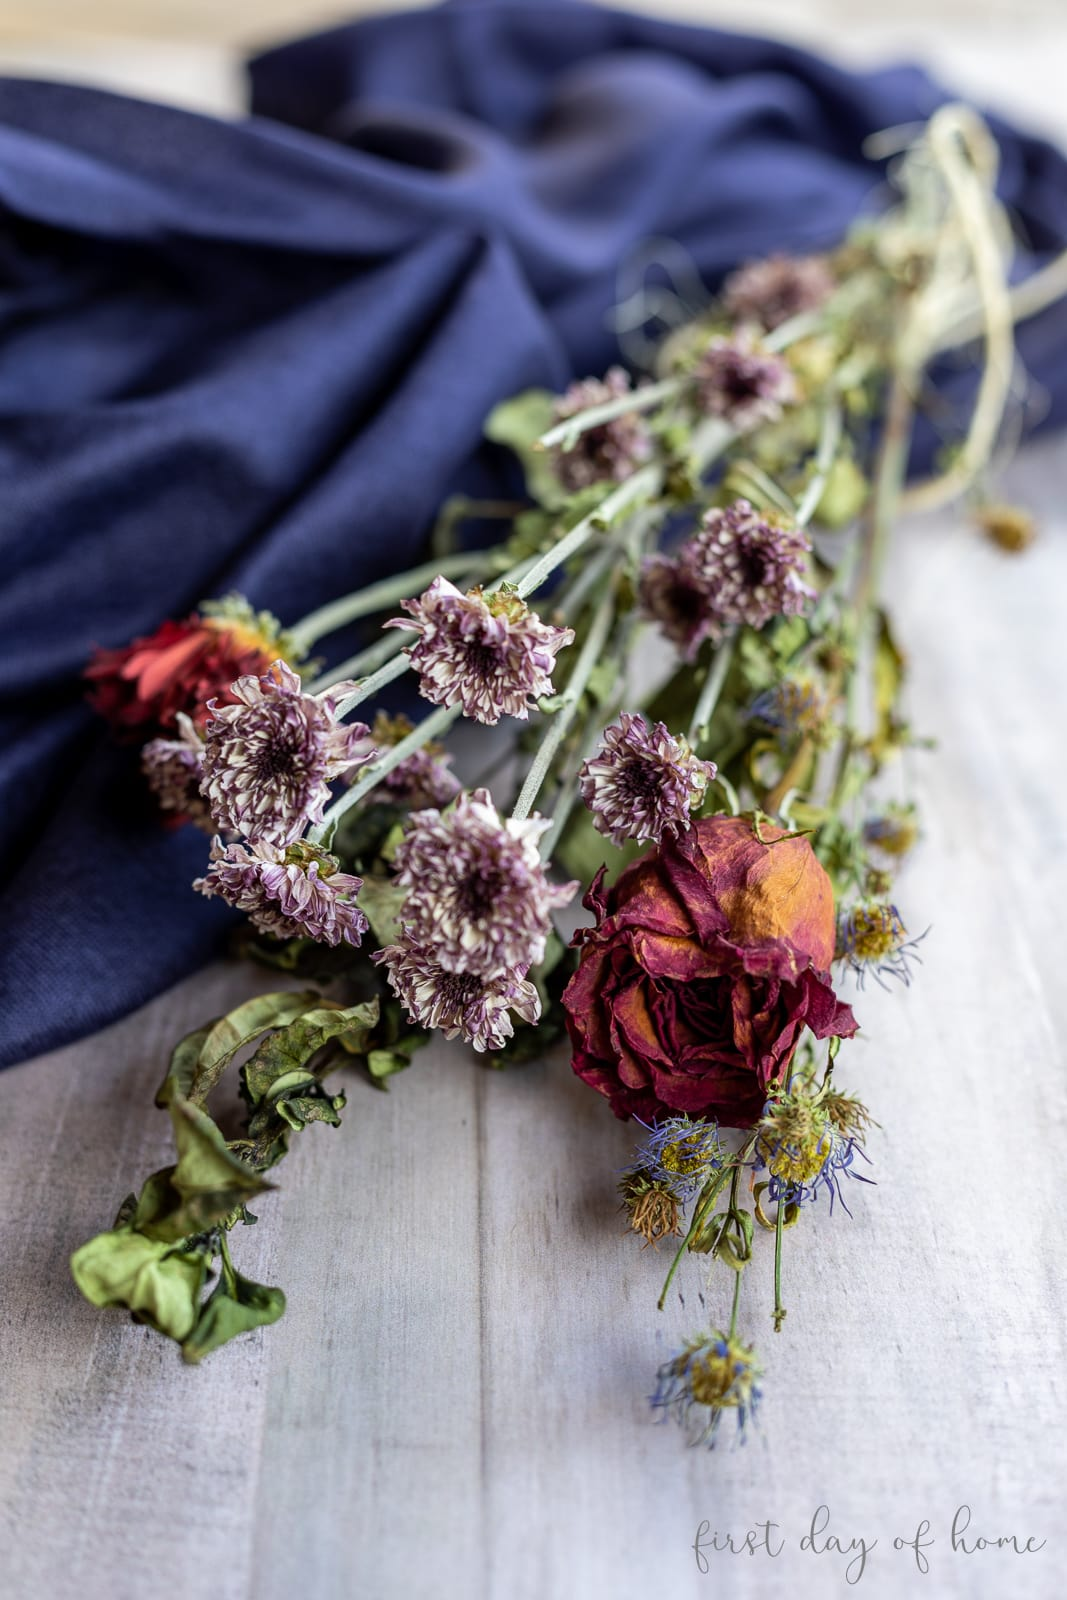 Dried flower bouquet with roses, mums and other dried leaves